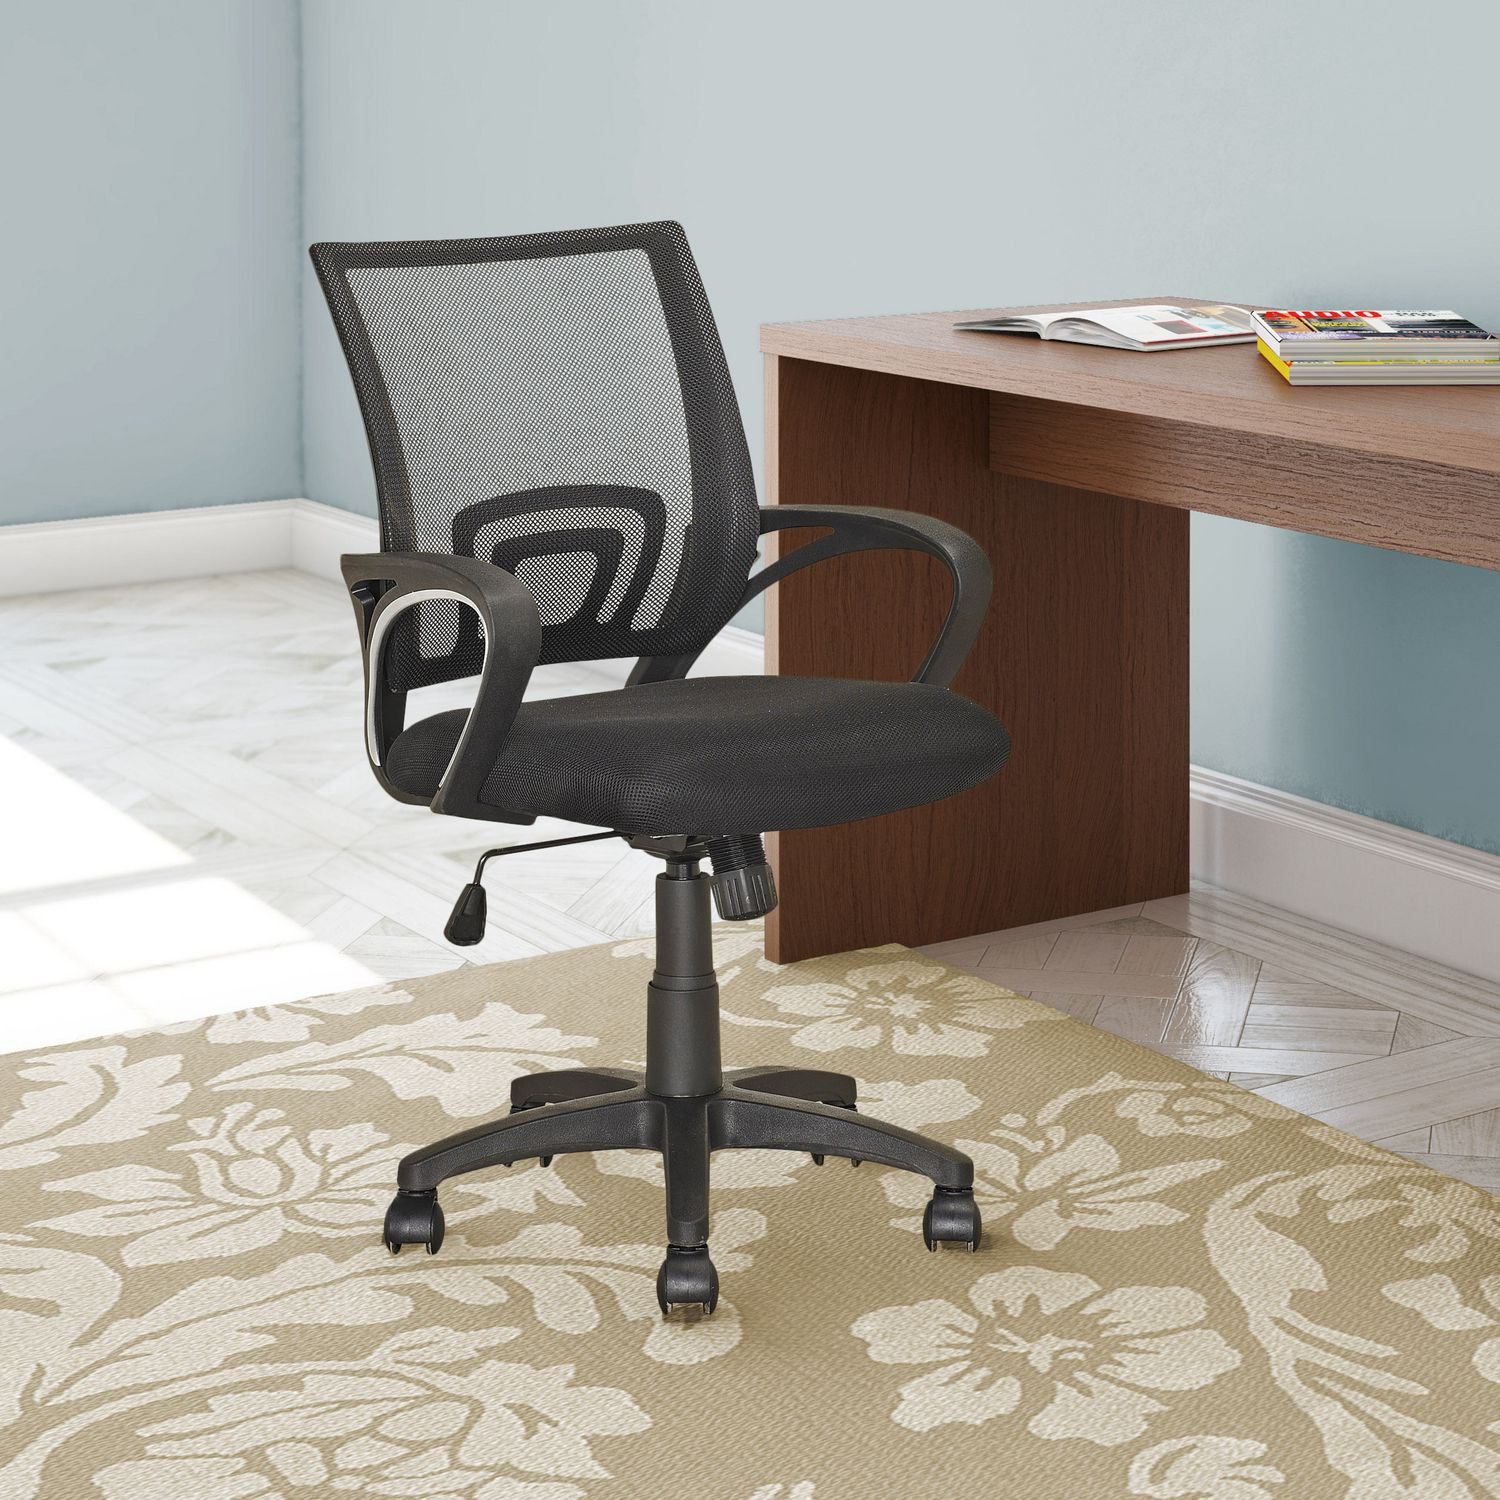 CorLiving LOF 309 O fice Chair in Black